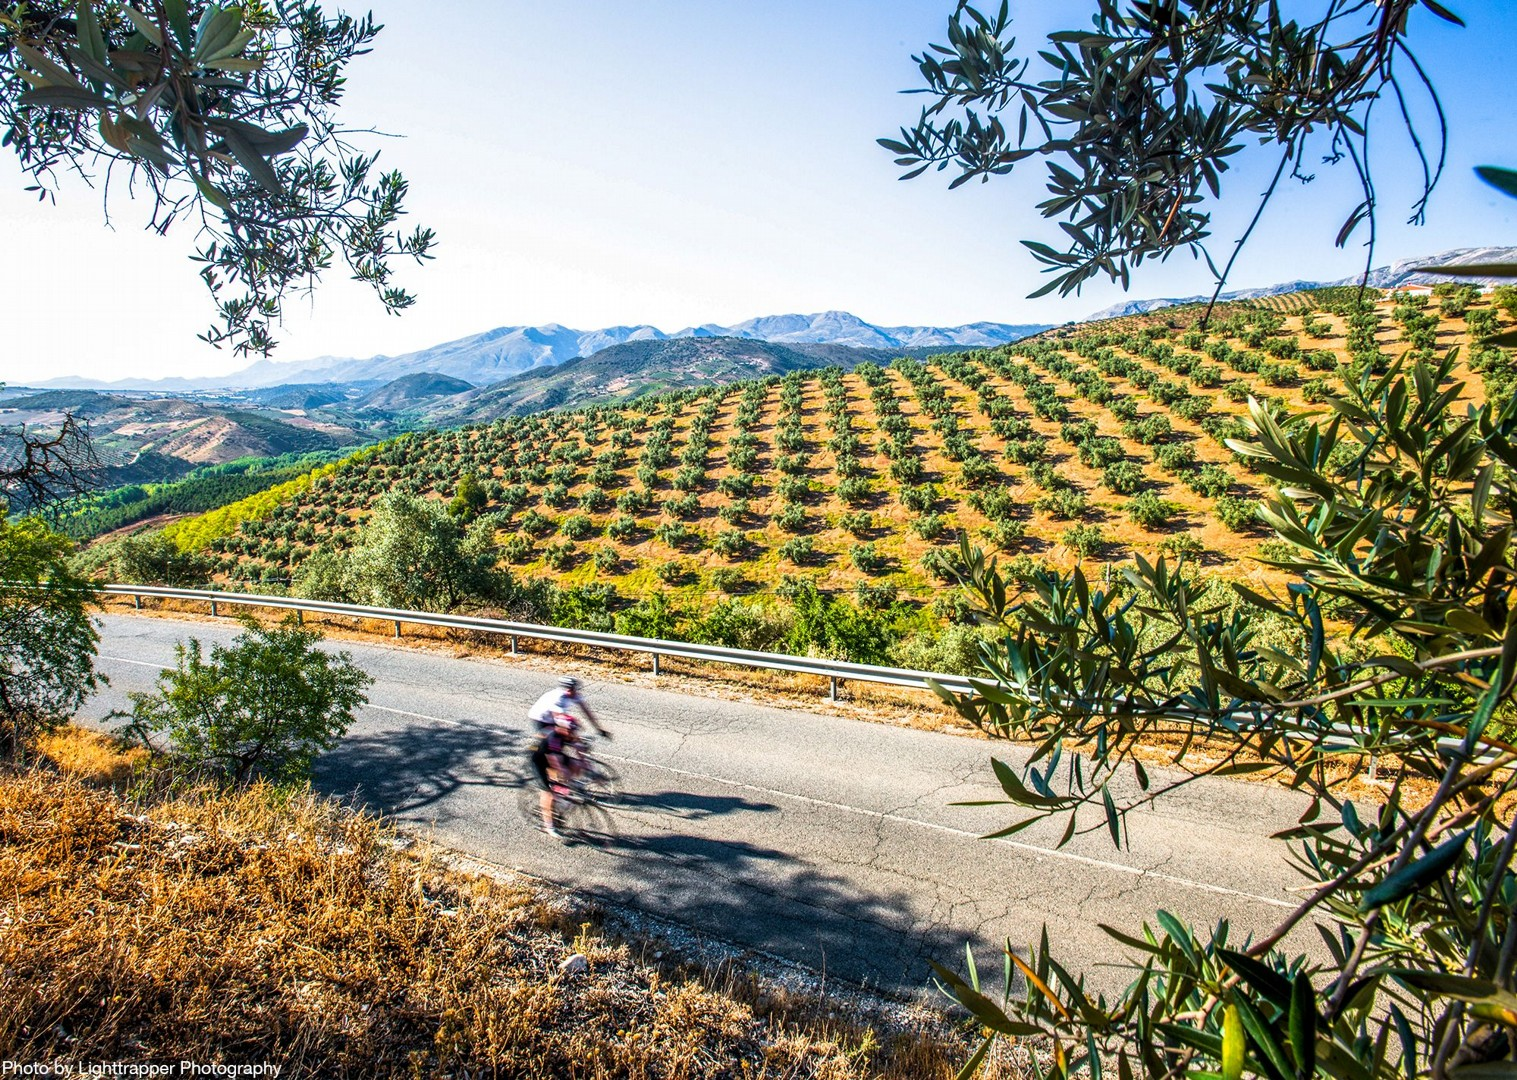 spain-basque-country-to-andalucia-north-to-south-16-days-cycling-holiday.jpg - Spain - Basque Country to Andalucia - North to South (16 Days) - Guided Road Cycling Holiday - Road Cycling